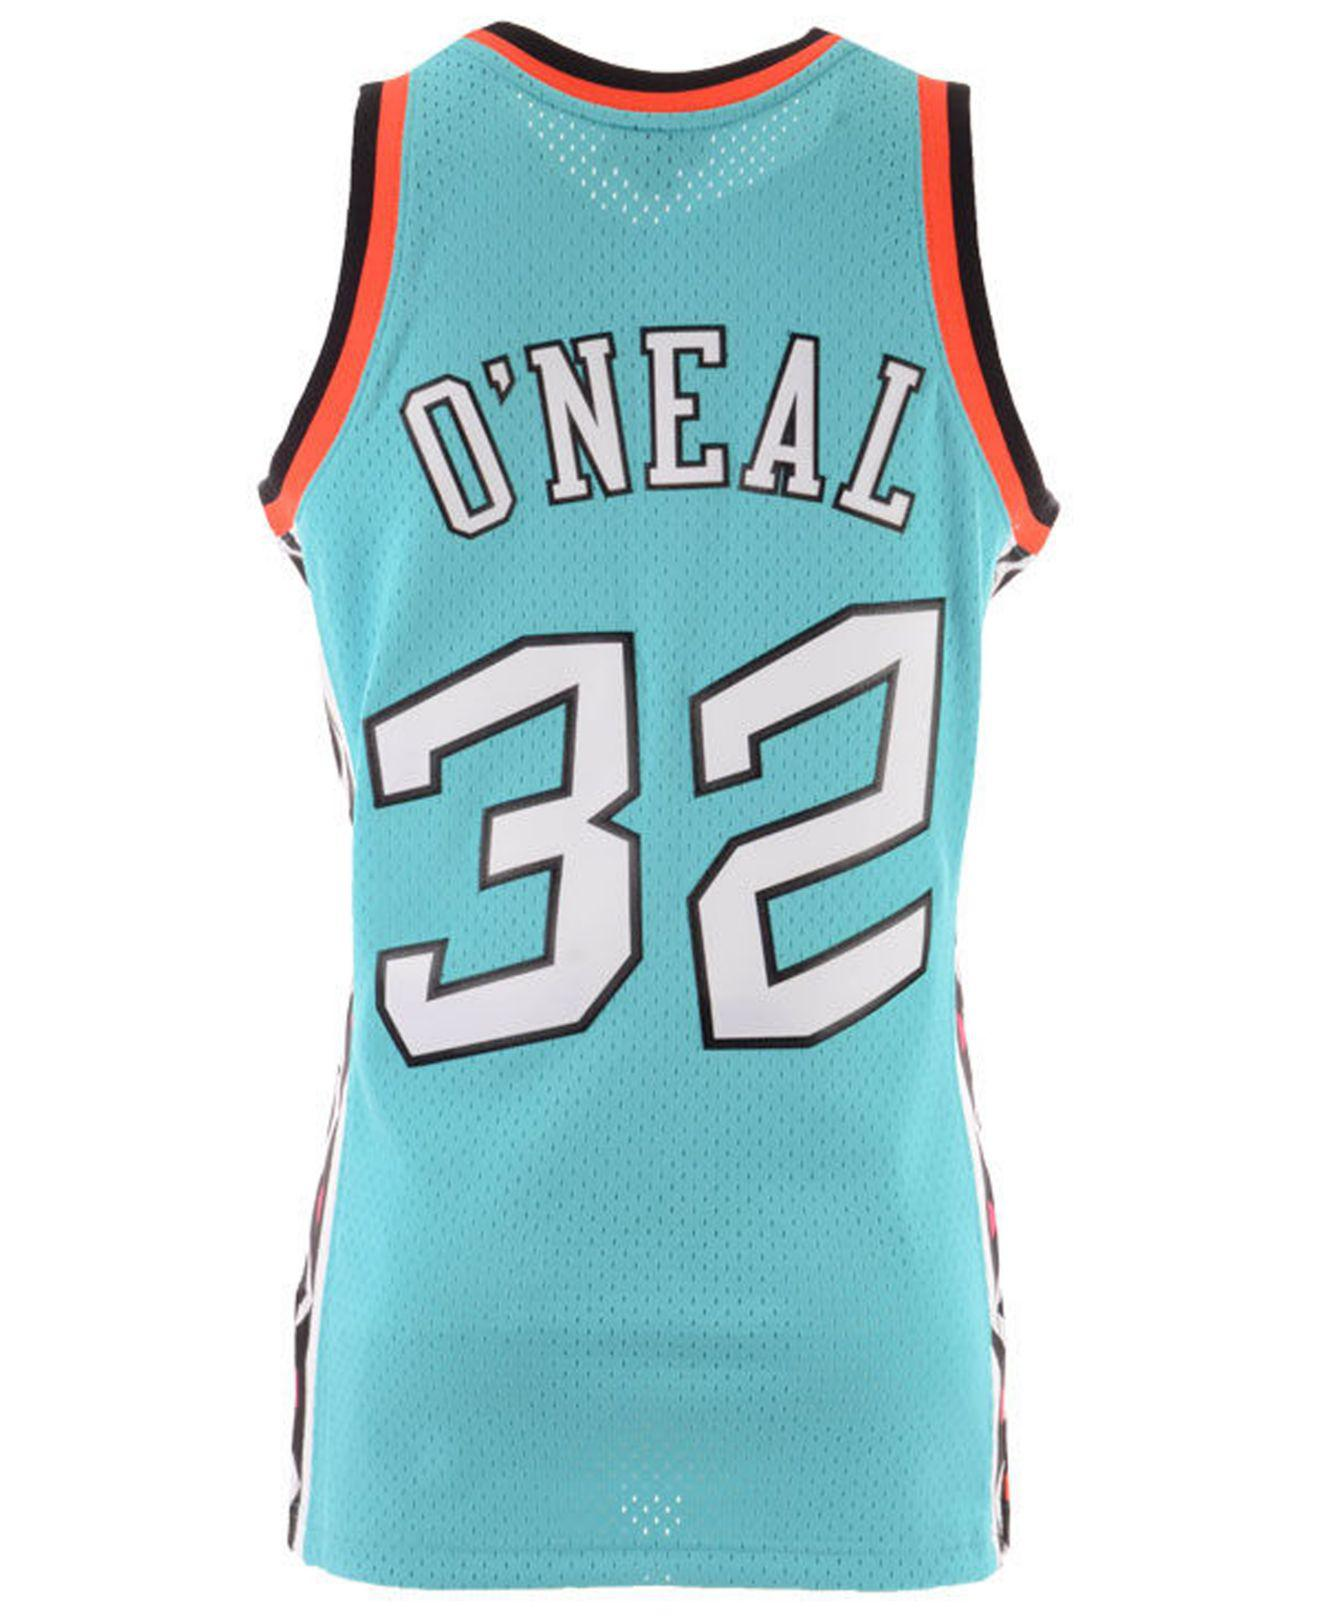 0877a8d12 Mitchell   Ness. Men s Blue Shaquille O neal Nba All Star 1996 Swingman  Jersey